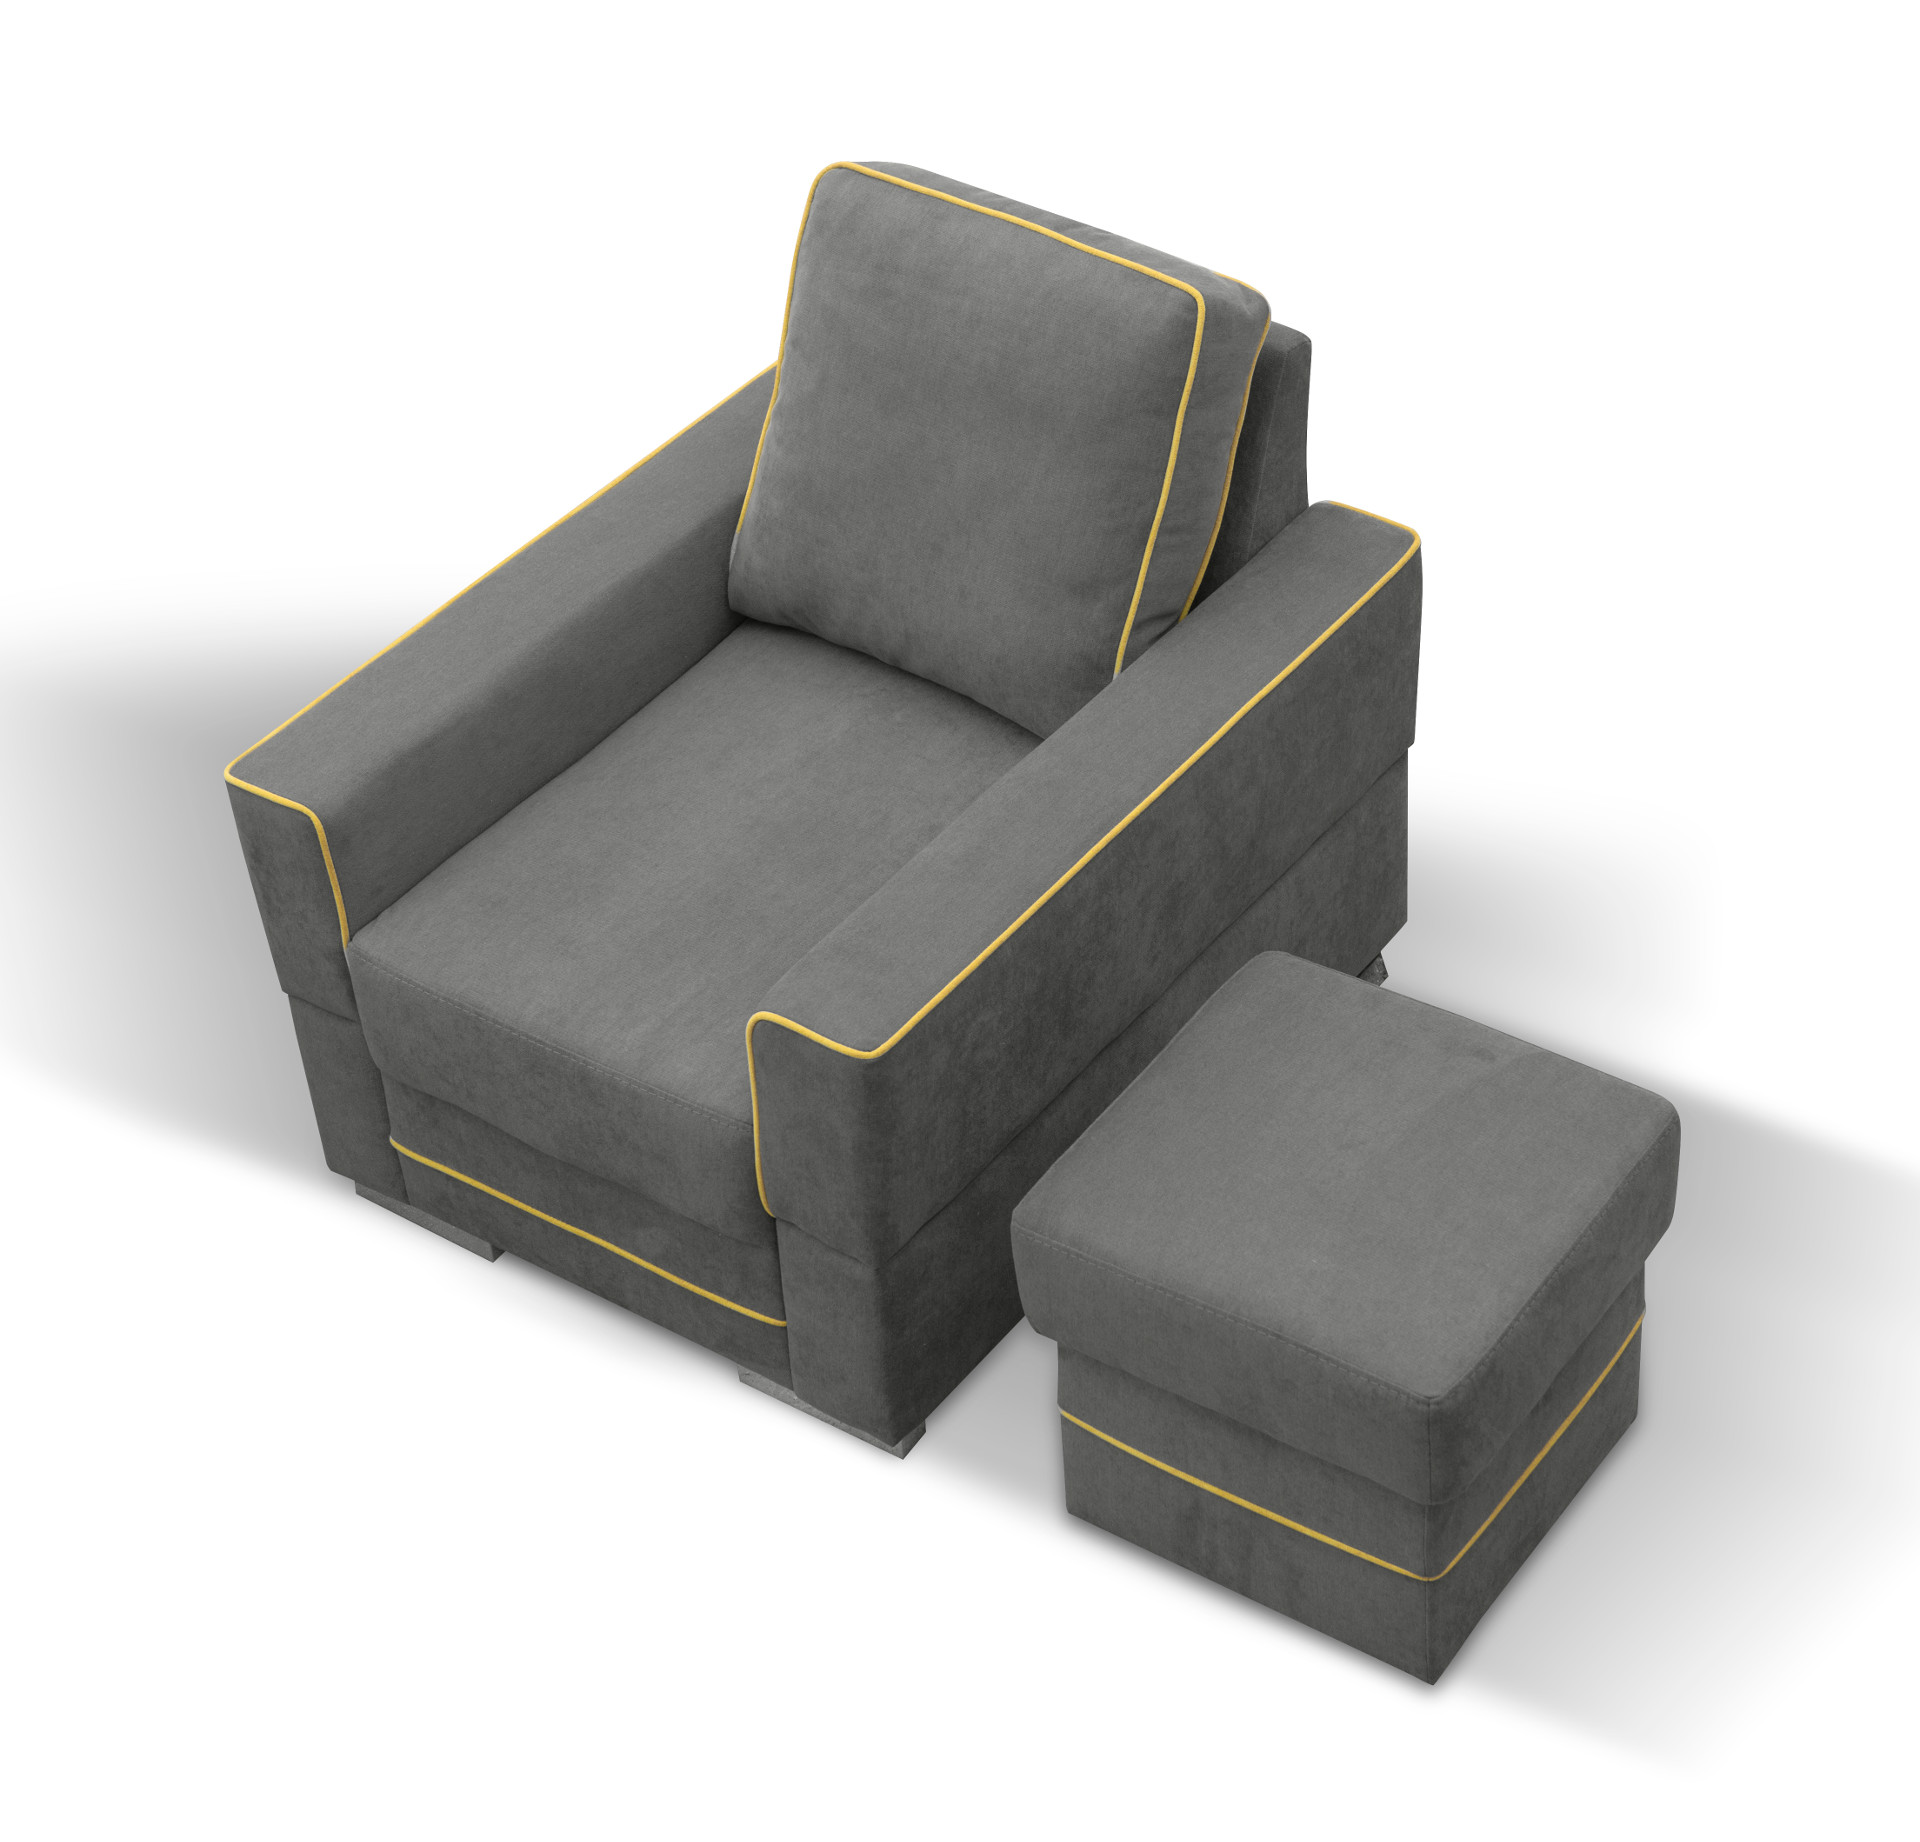 Swell Couch Designer Polster 1 Textil Fernseh Sessel Couch Sitzer Cjindustries Chair Design For Home Cjindustriesco